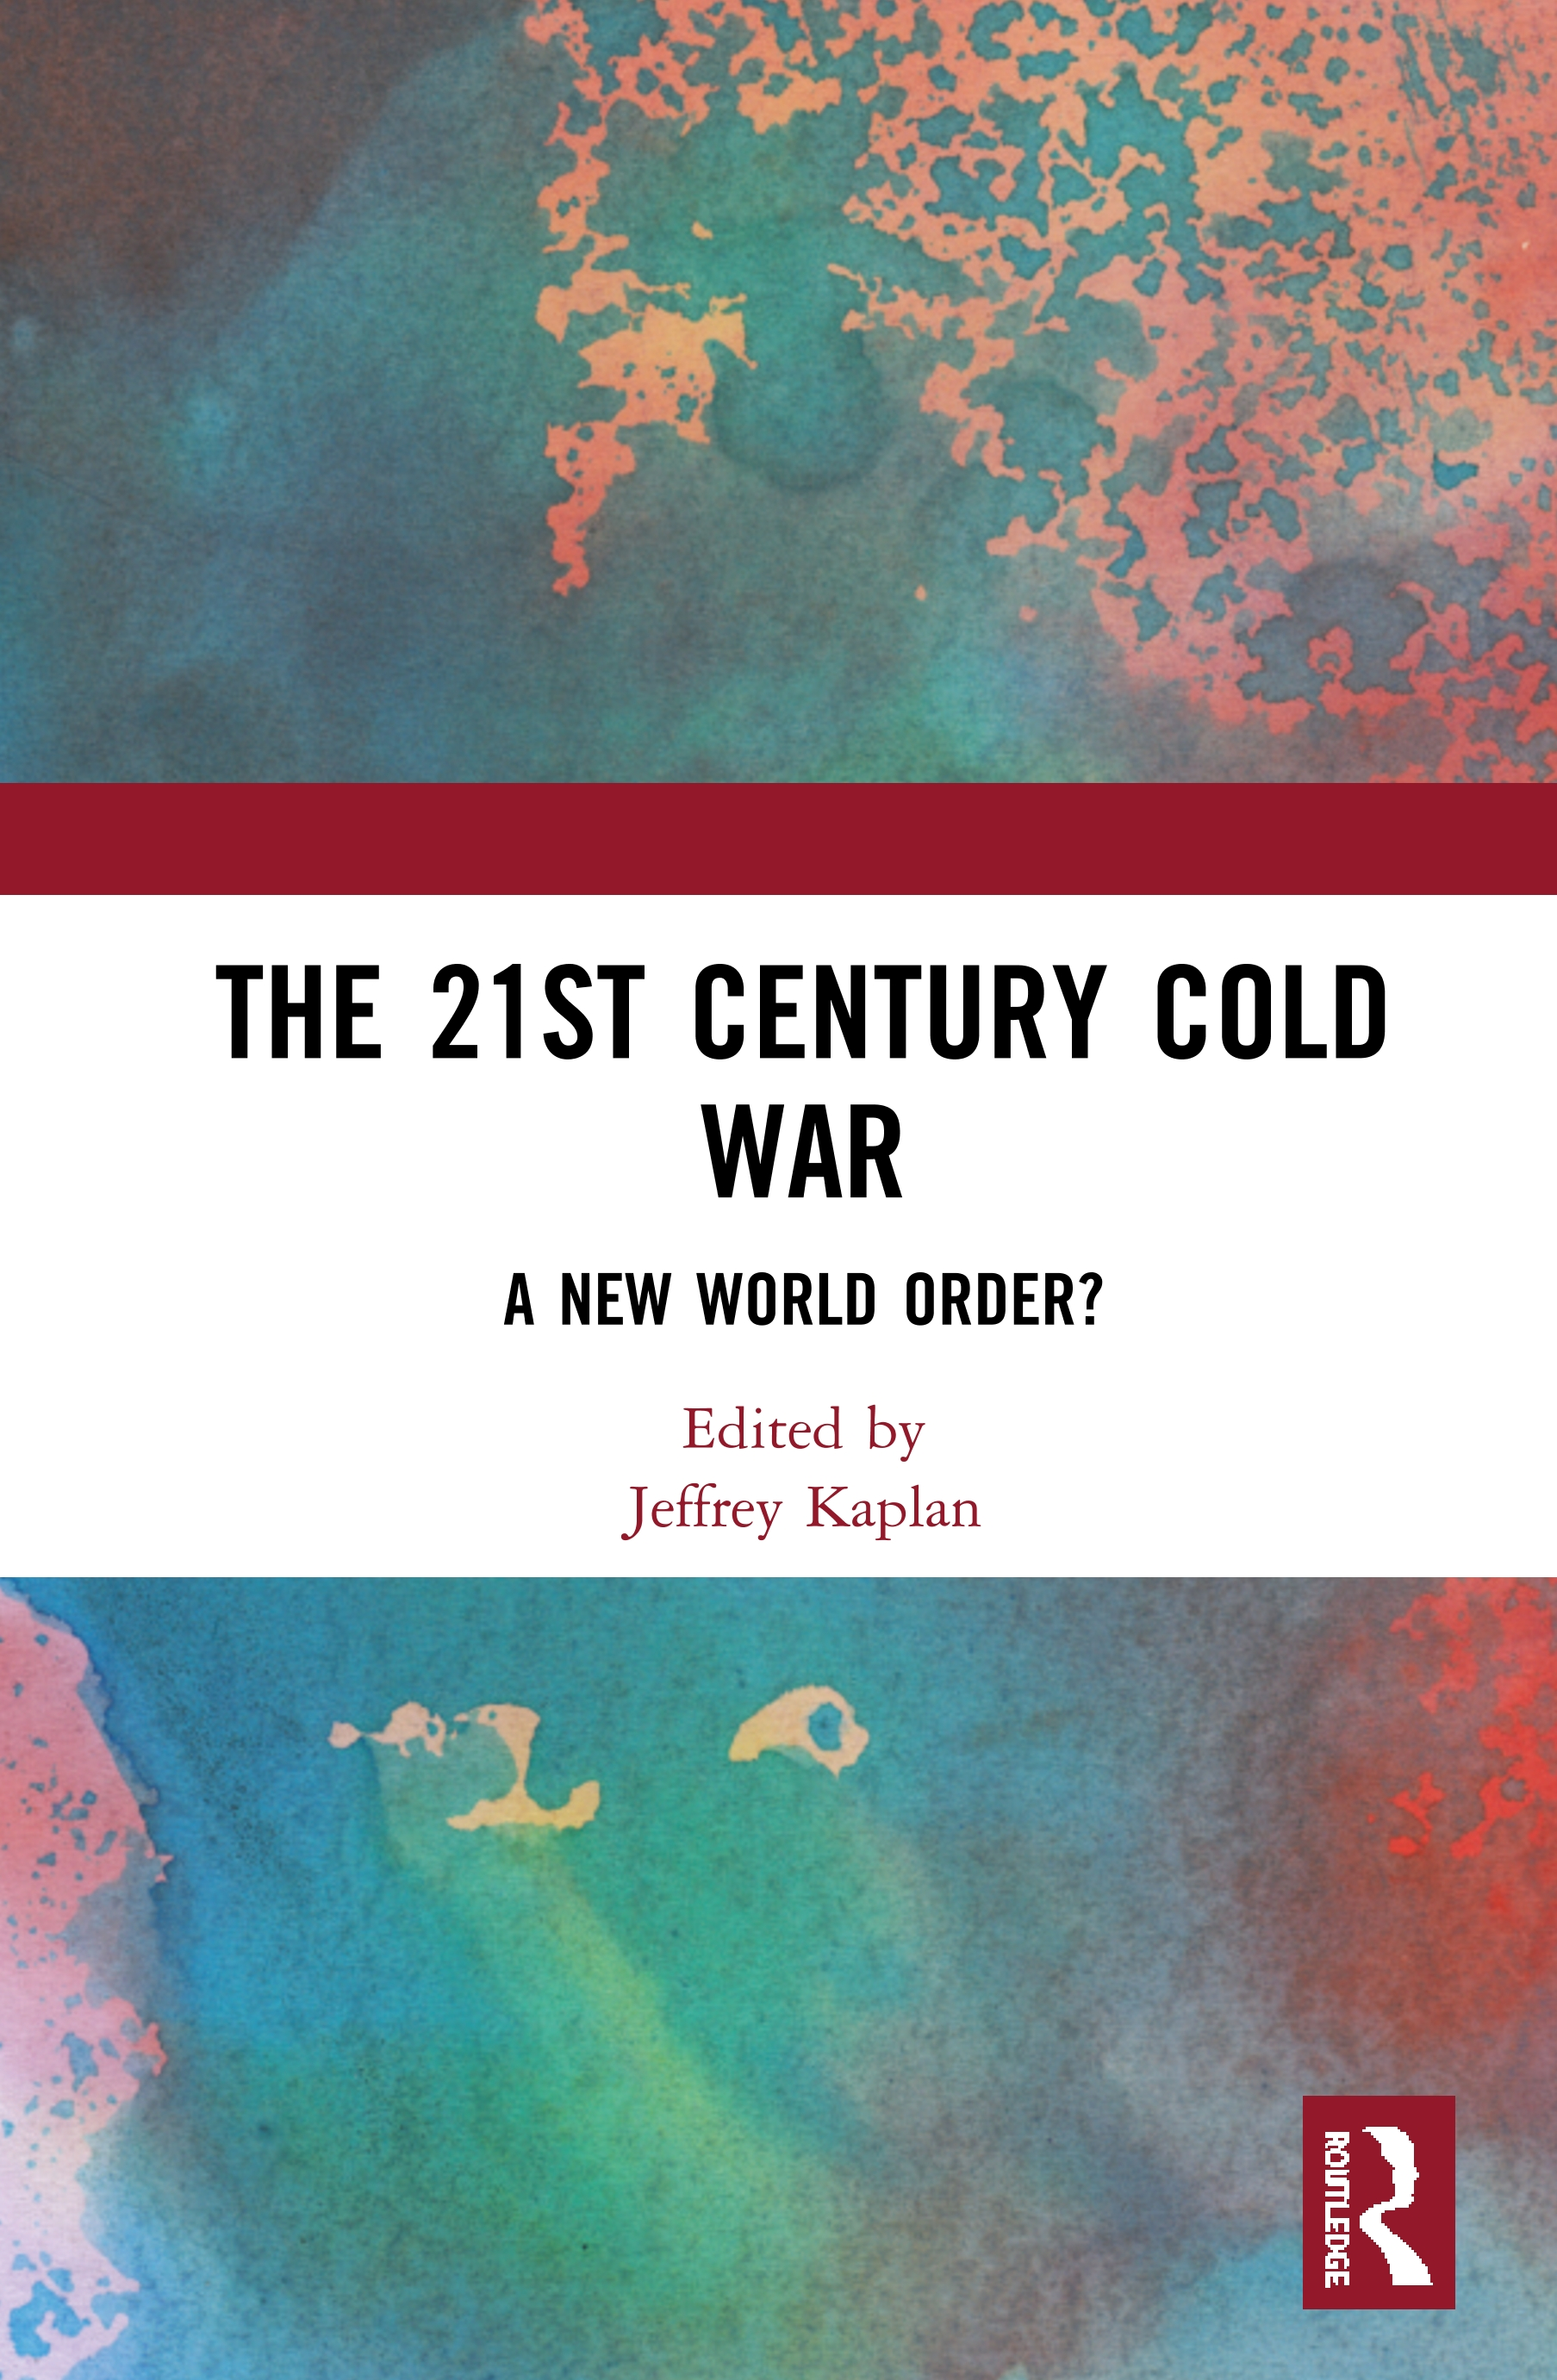 The 21st Century Cold War: A New World Order? book cover